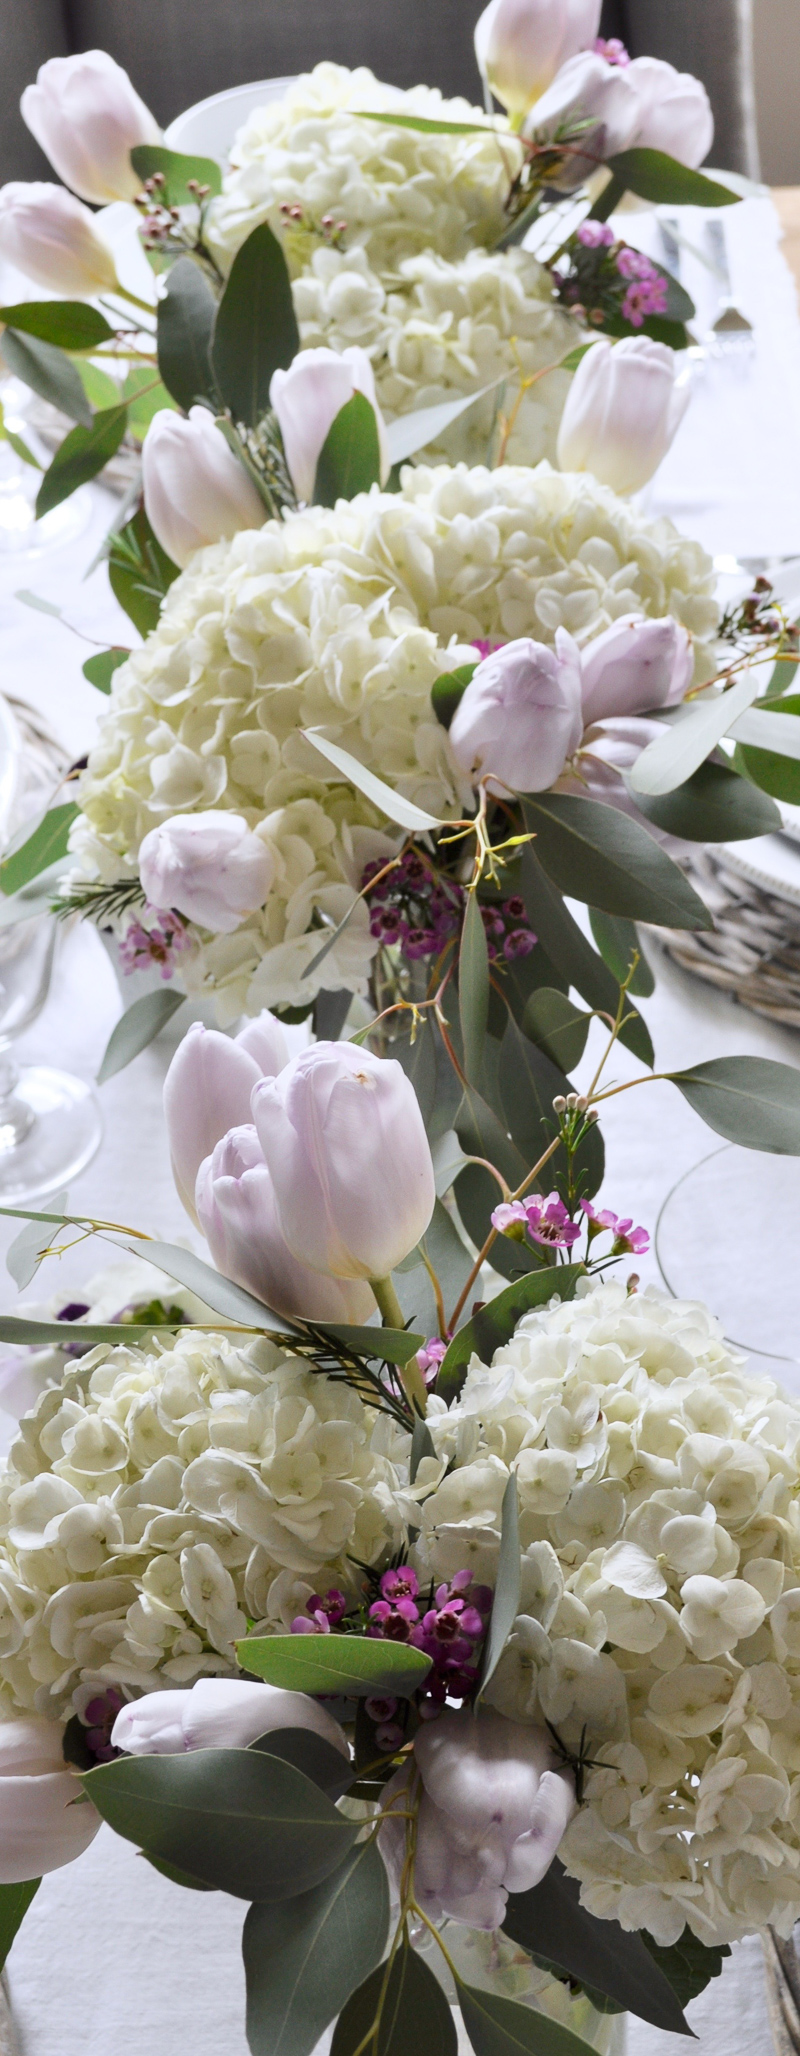 Easter Centerpiece with Tulips Hydrangeas and Eucalyptus